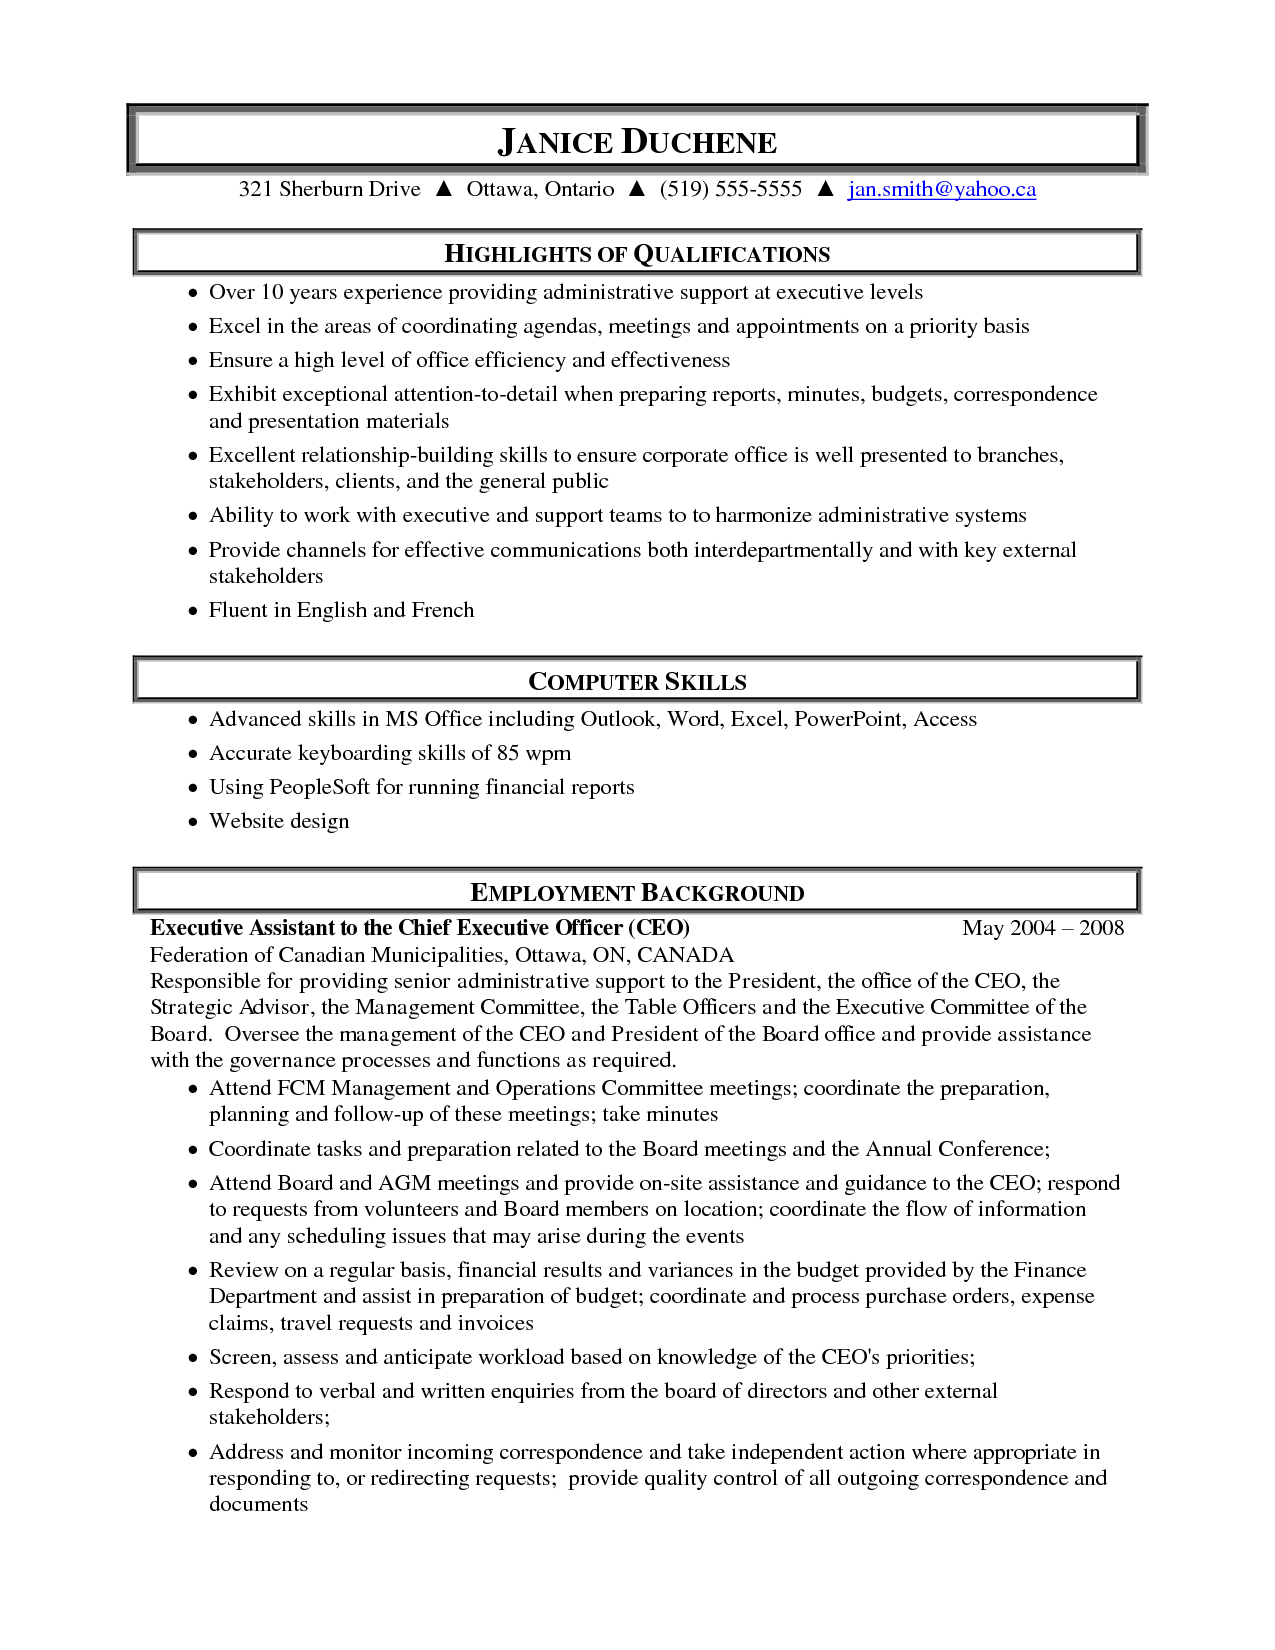 Medical Administrative Assistant Resume Samples Highlight Of Qualifications  Administrative Assistant Resume Samples